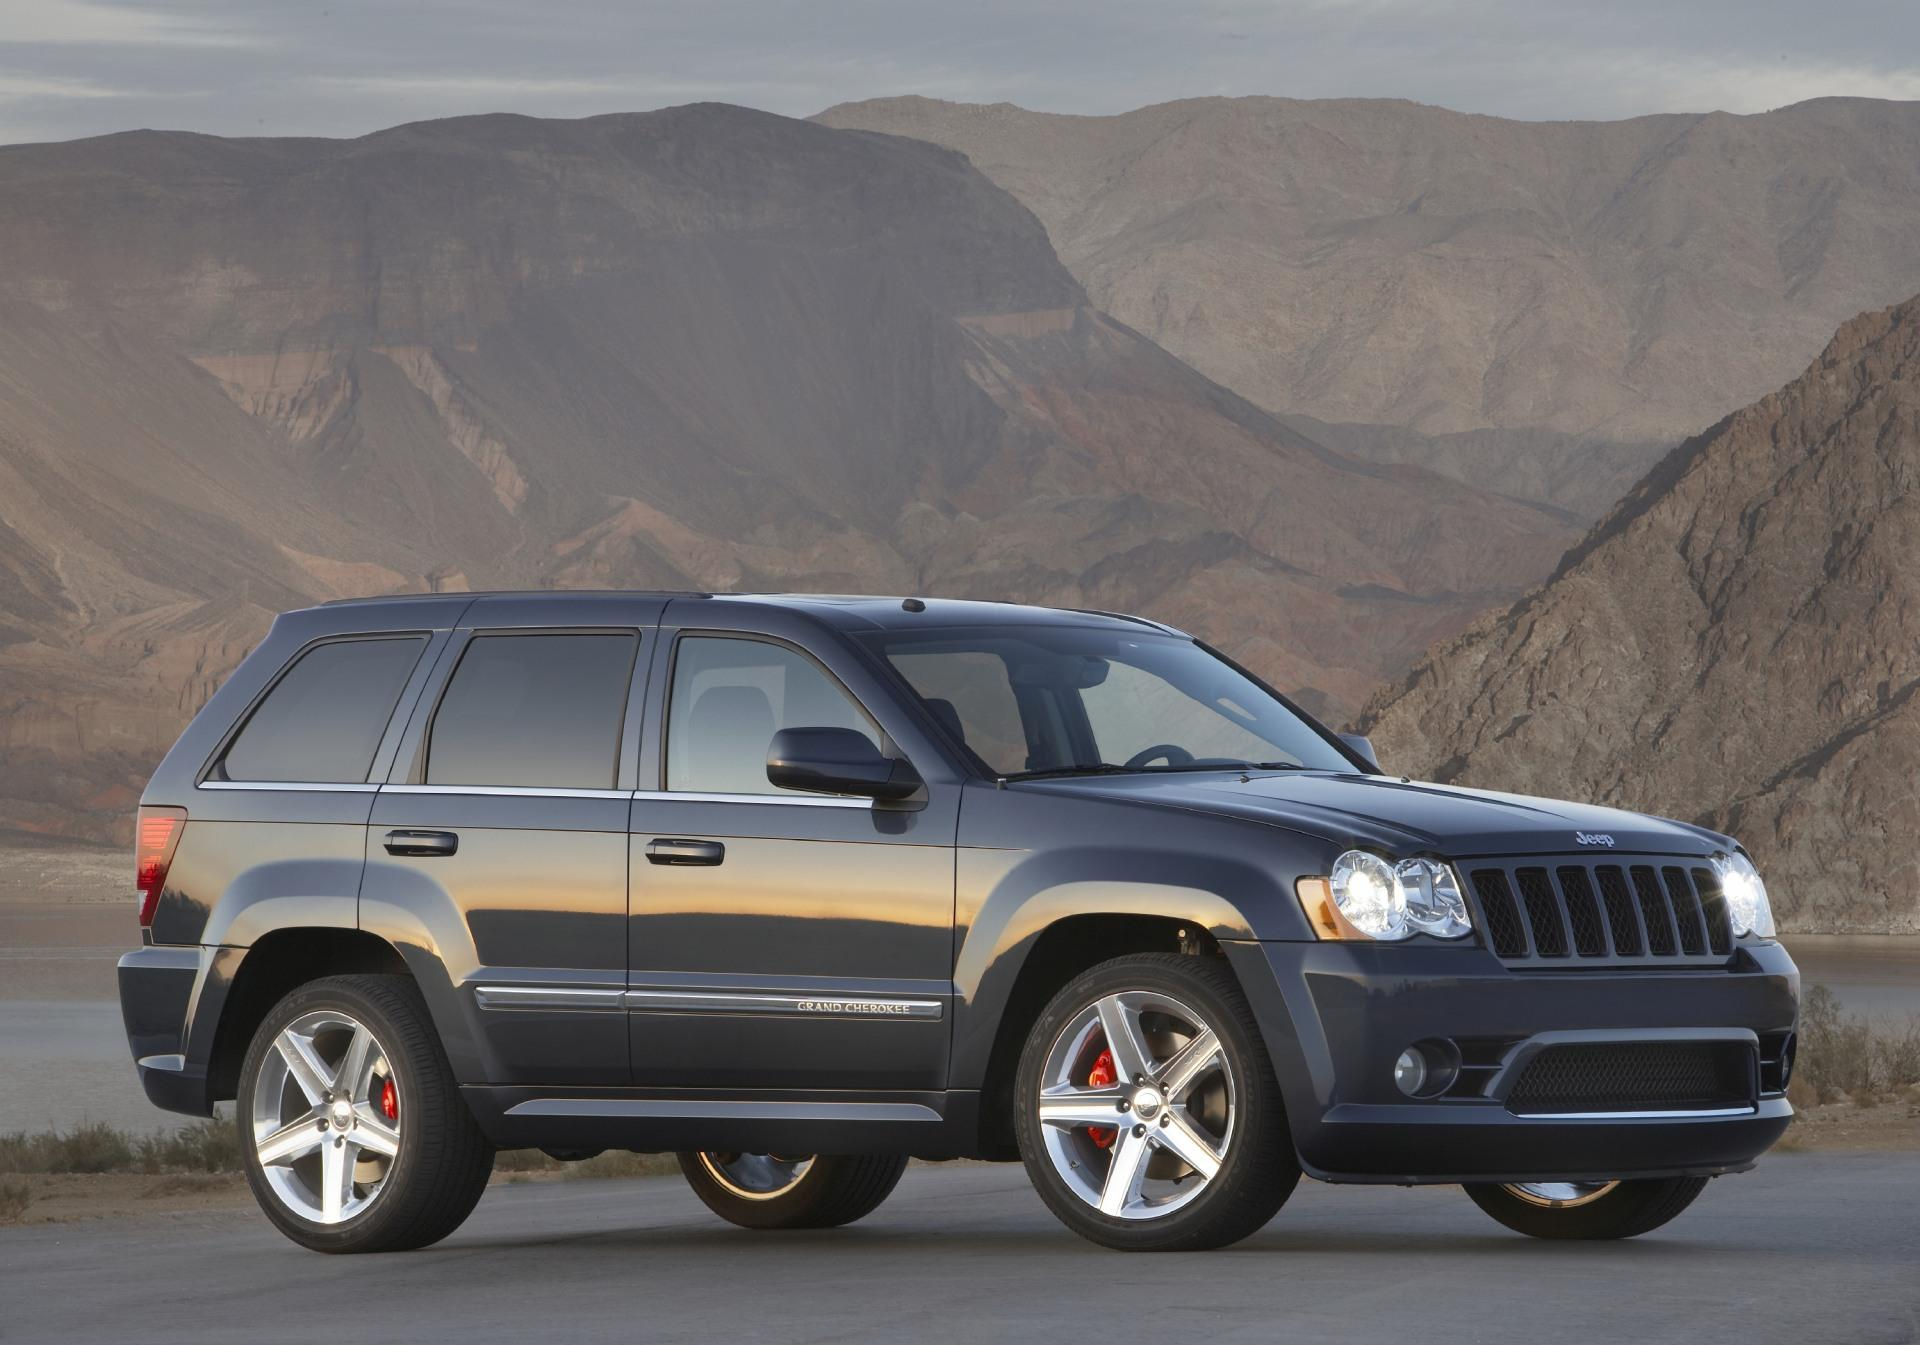 2010 jeep grand cherokee srt8 images photo 2010 jeep cherokee srt8 image. Black Bedroom Furniture Sets. Home Design Ideas